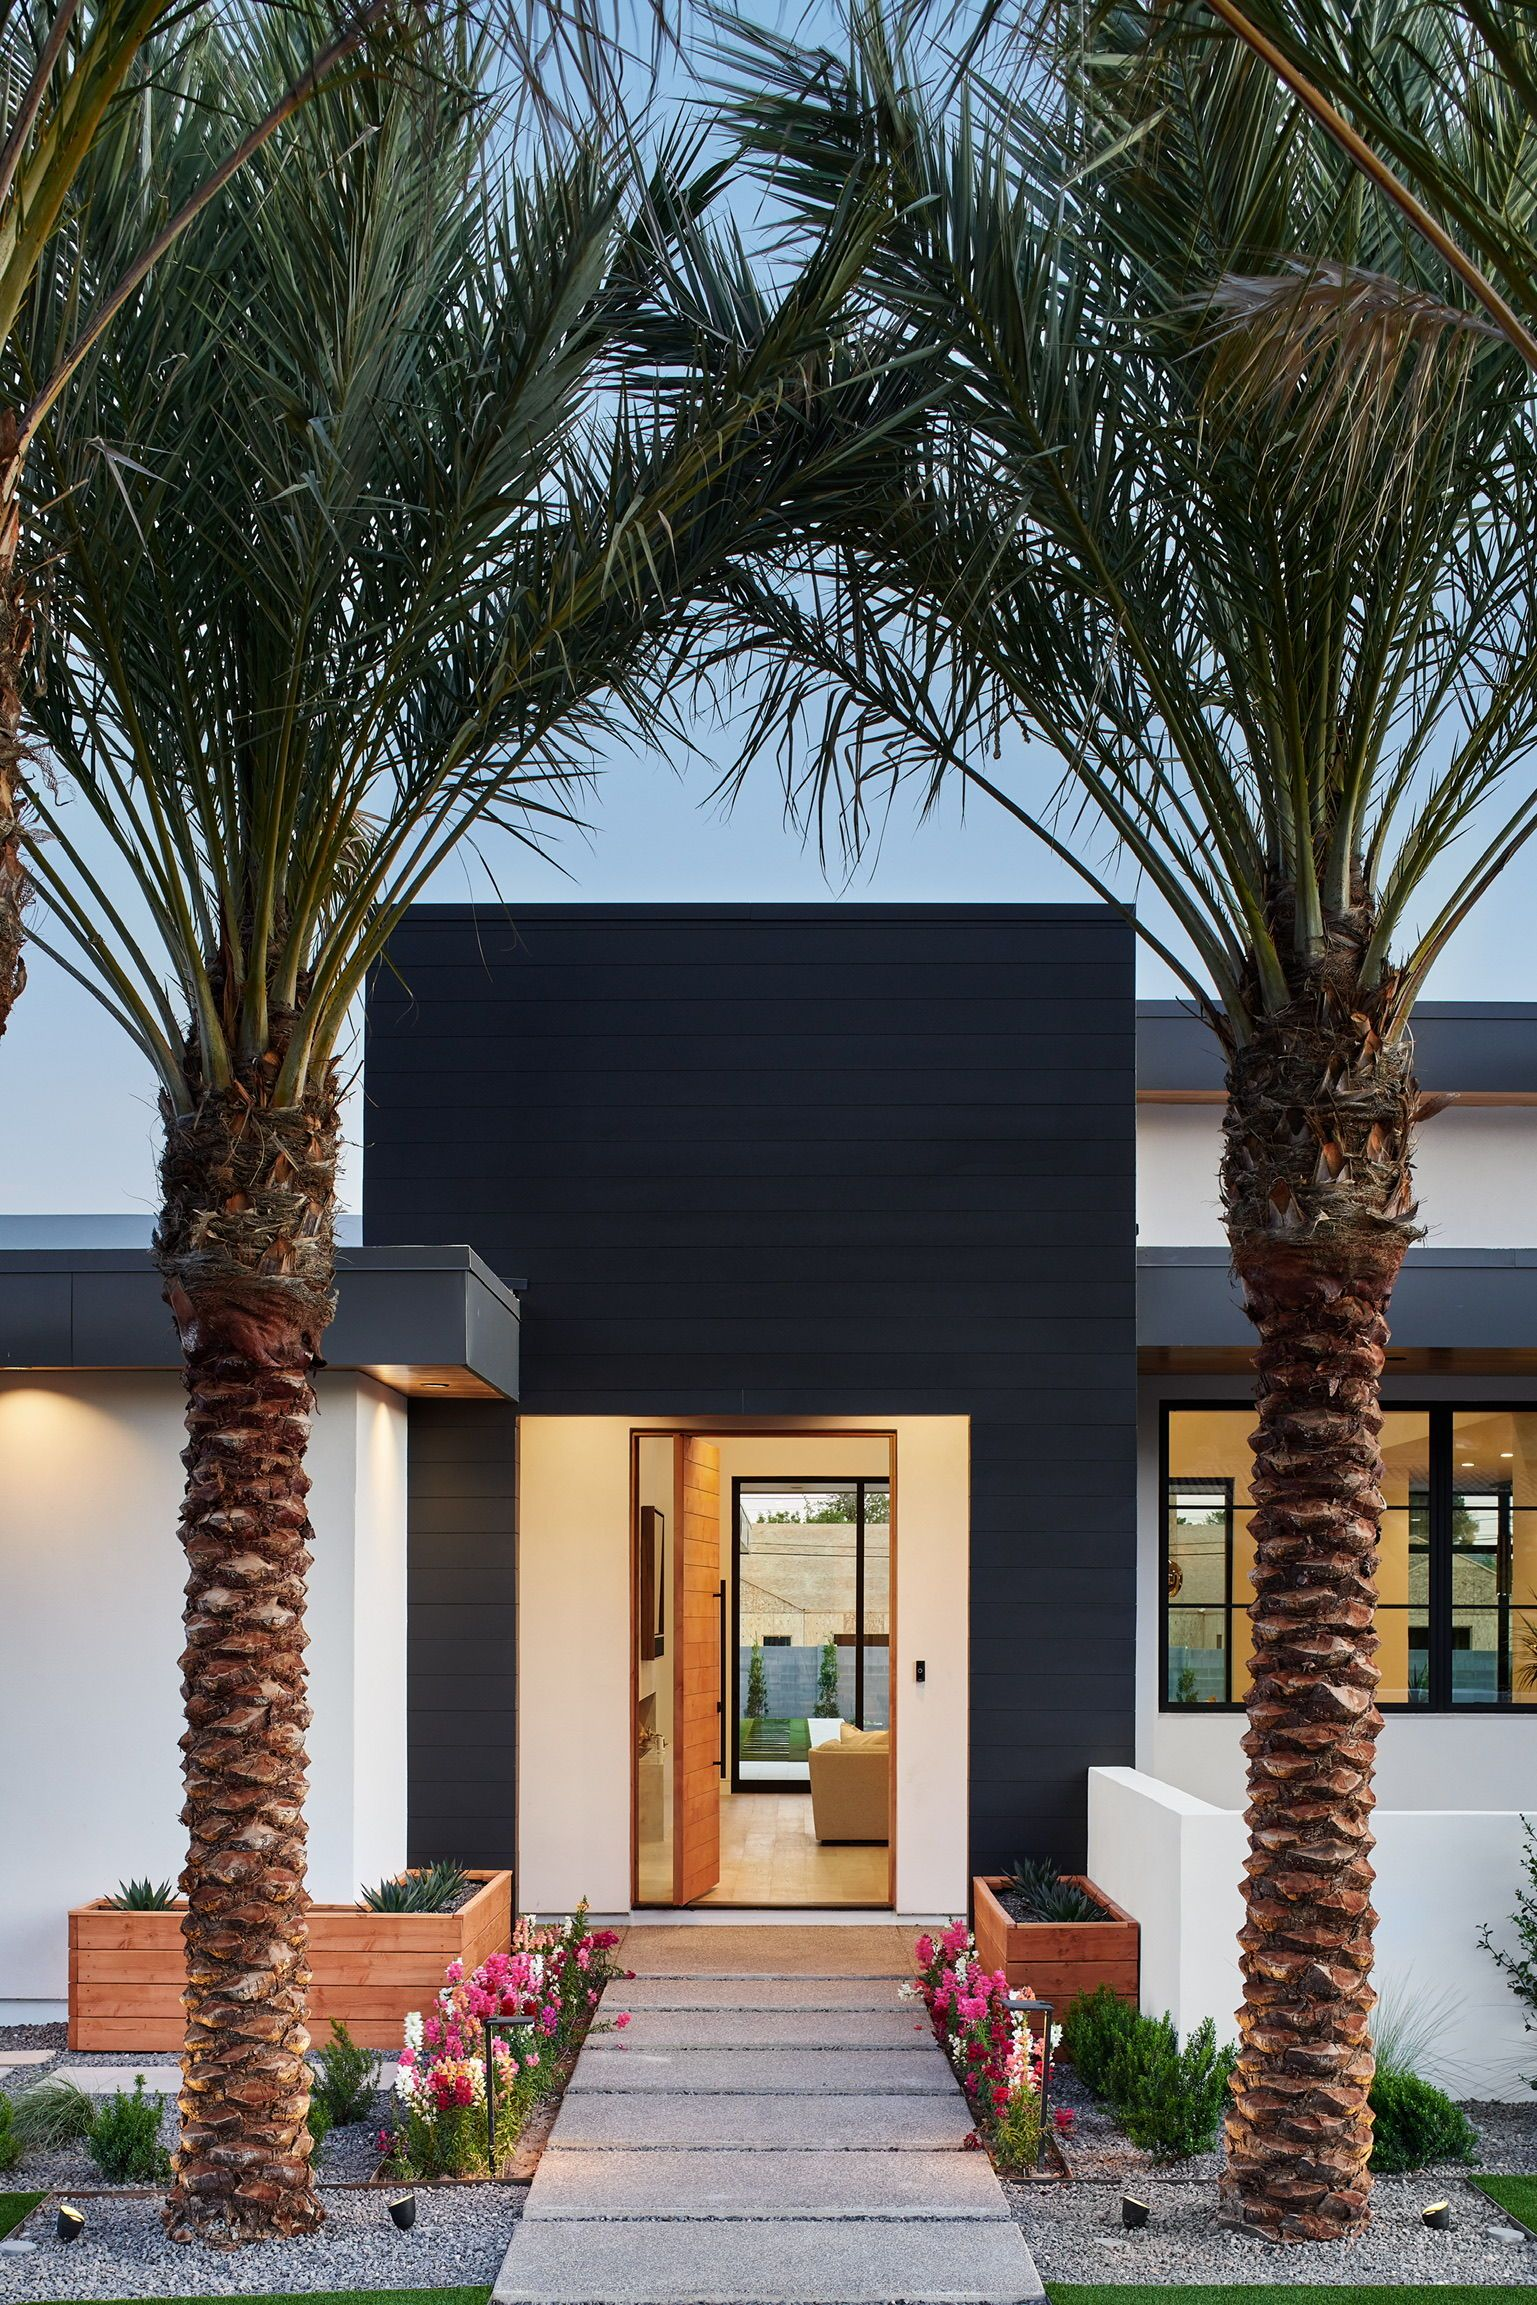 Palm tree lined entryway to this beautiful modern home with clean black and white exterior. Oversized front pivot door and clean landscaping. This is the modern home of our dreams! Find in Arcadia, AZ. #exteriordesign #curbappeal #modernlandscaping